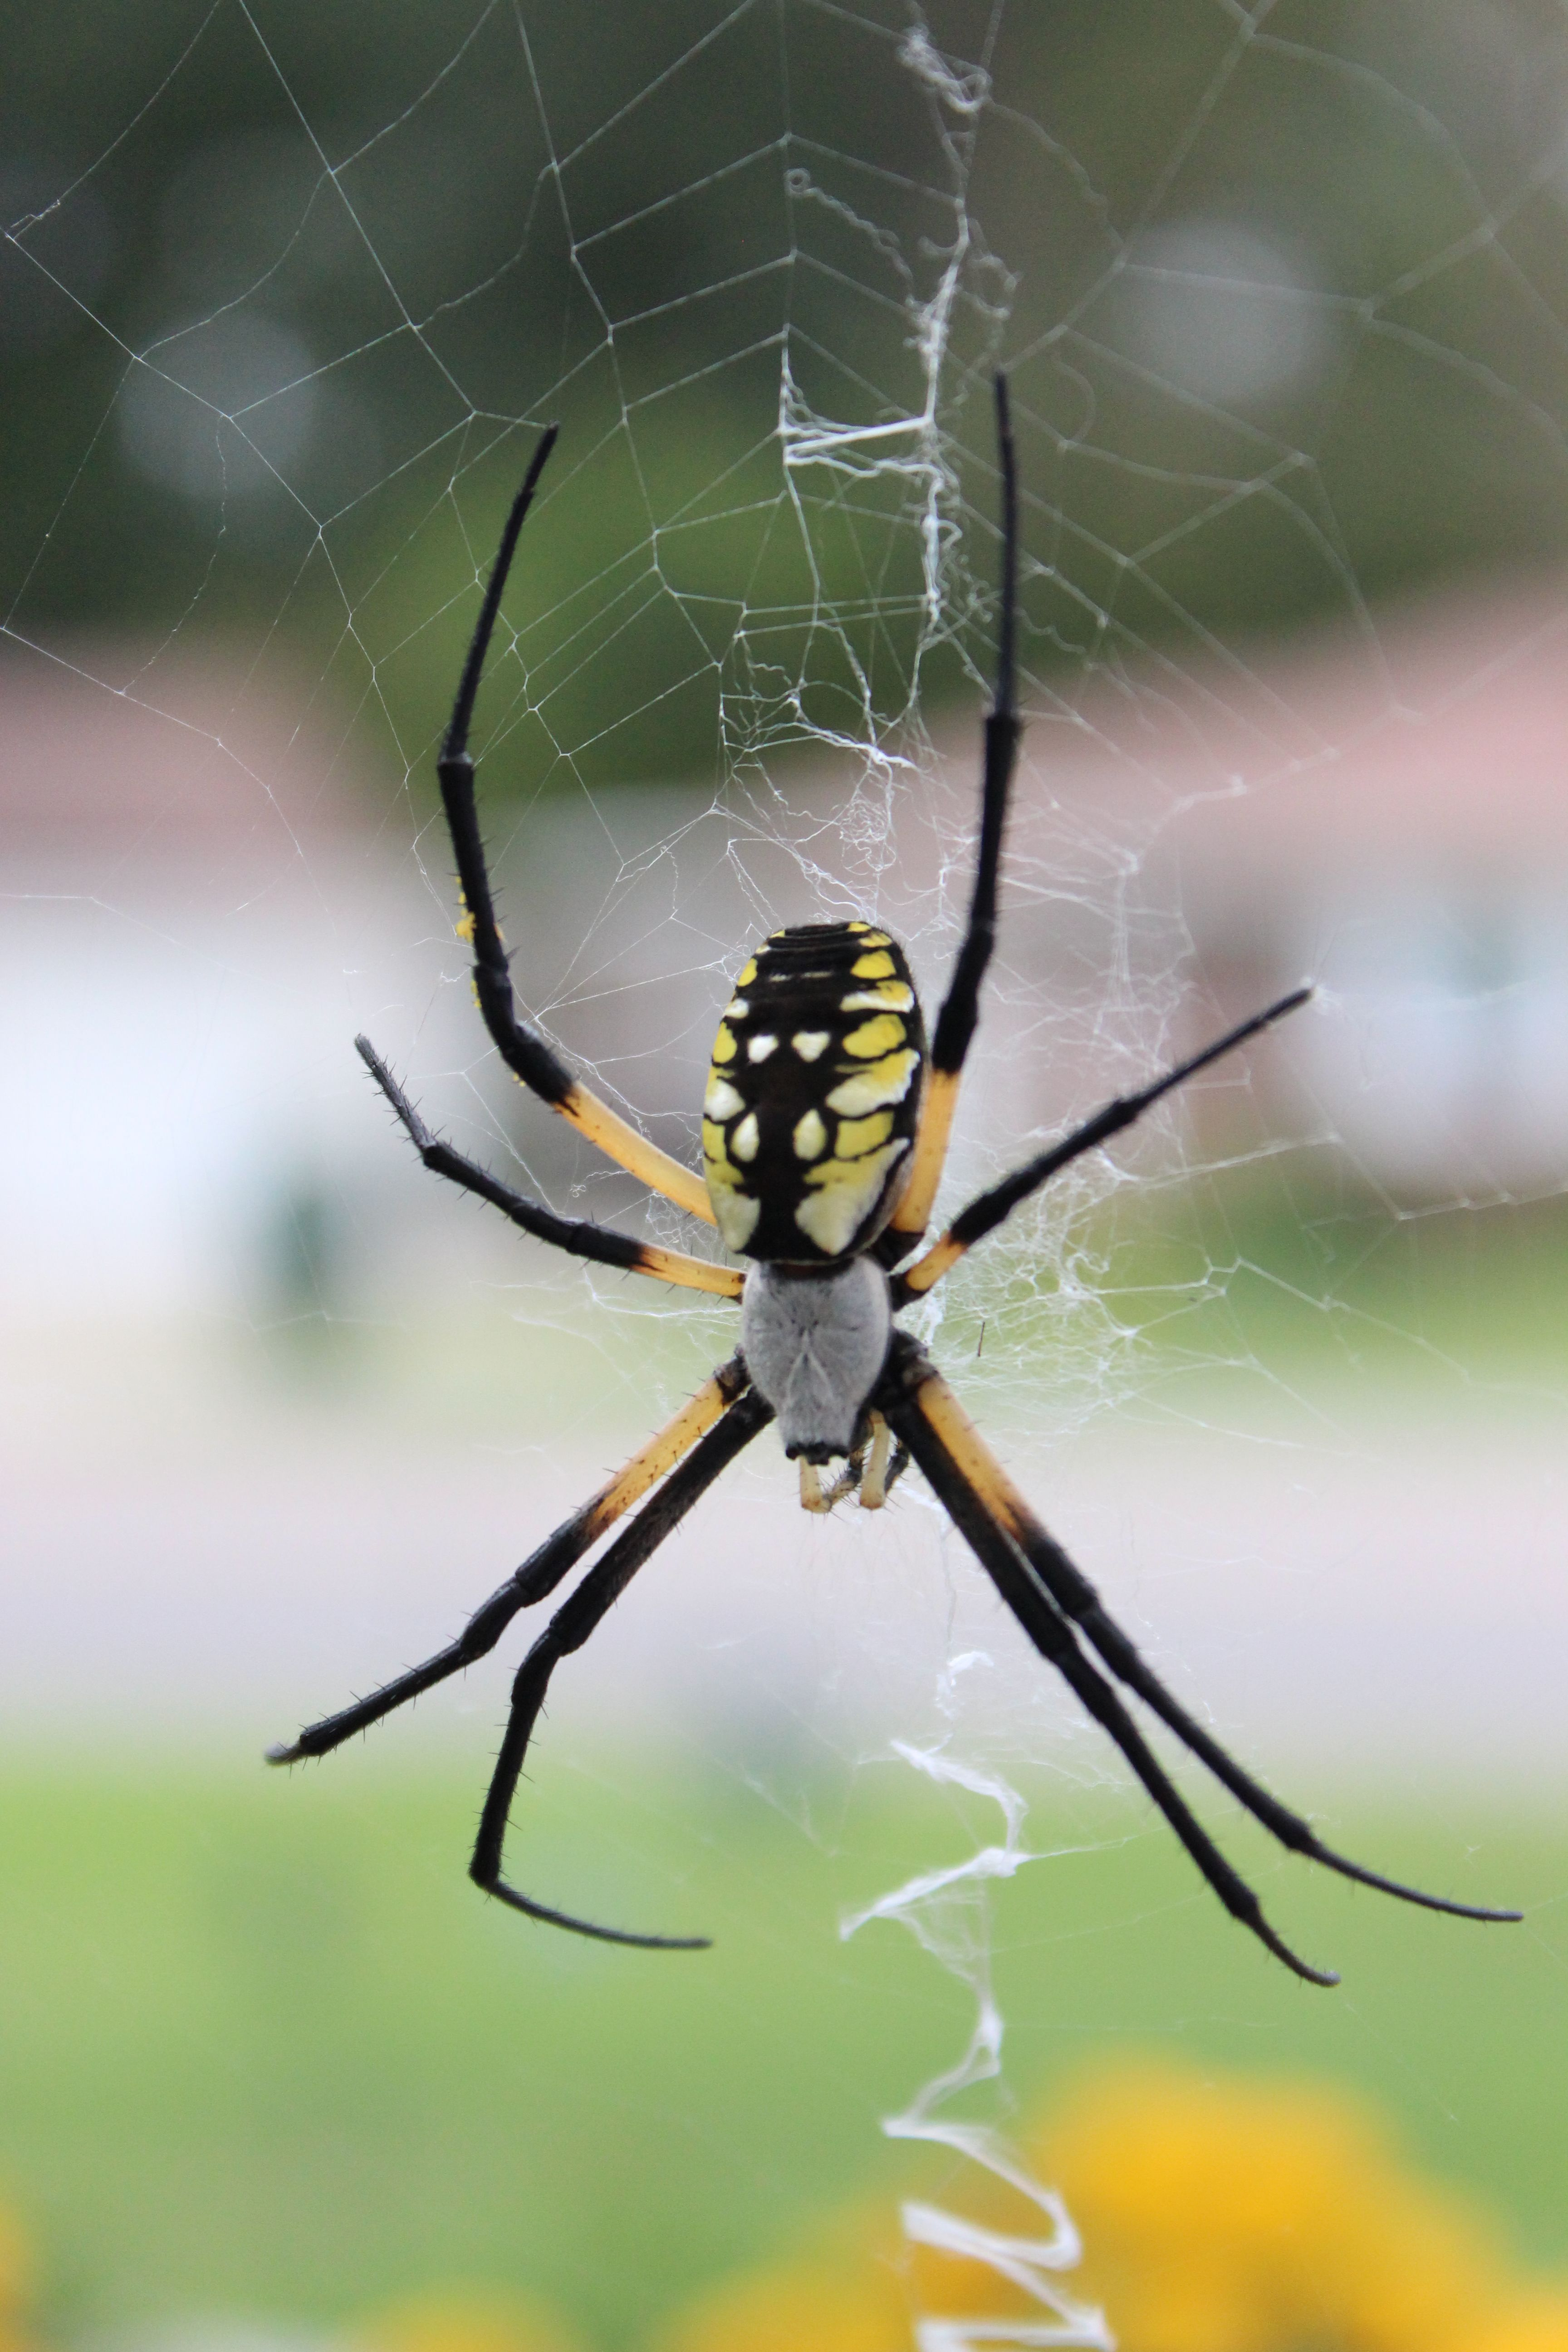 Orb Weaver, garden spider makes a zipper like web, said to